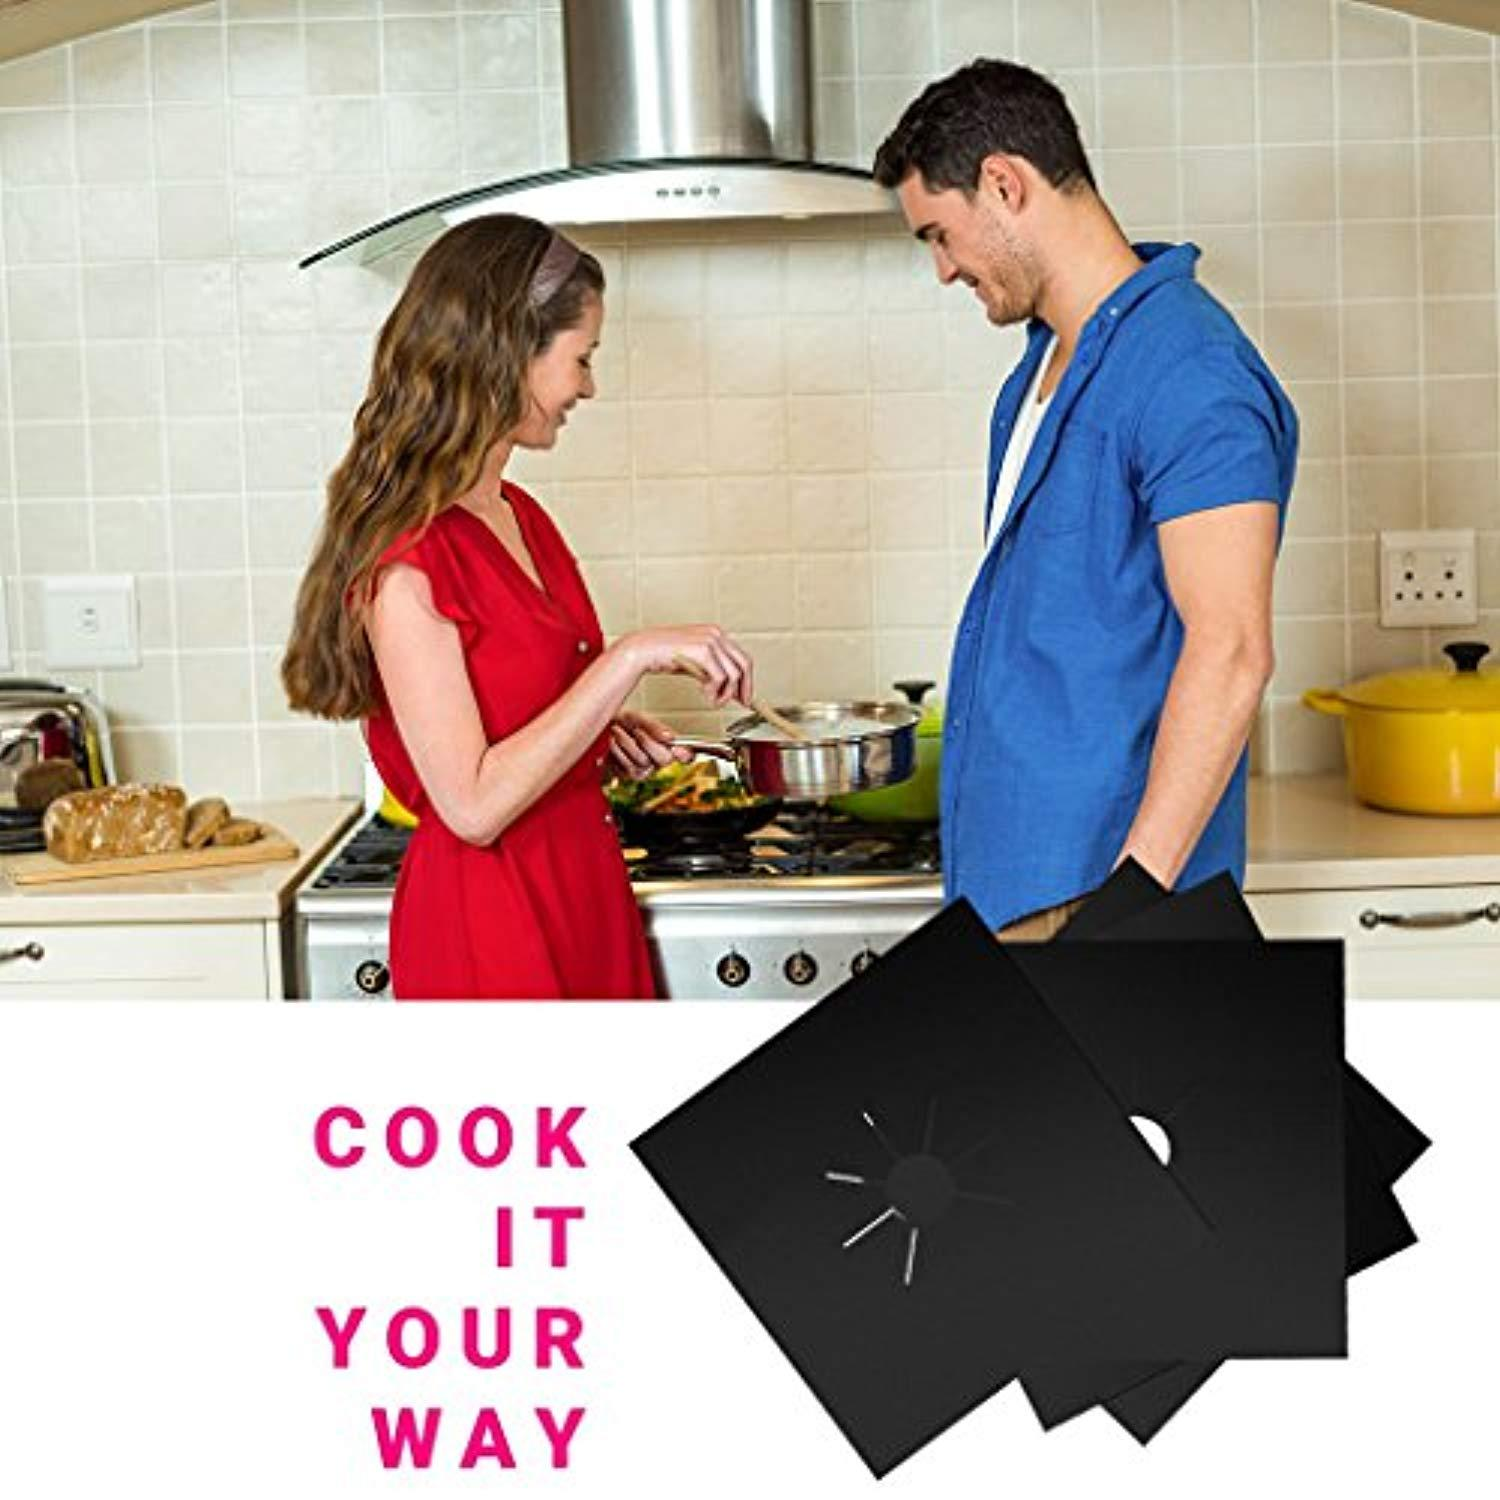 🔥Stove Burner Covers - Gas Stove Protectors🔥